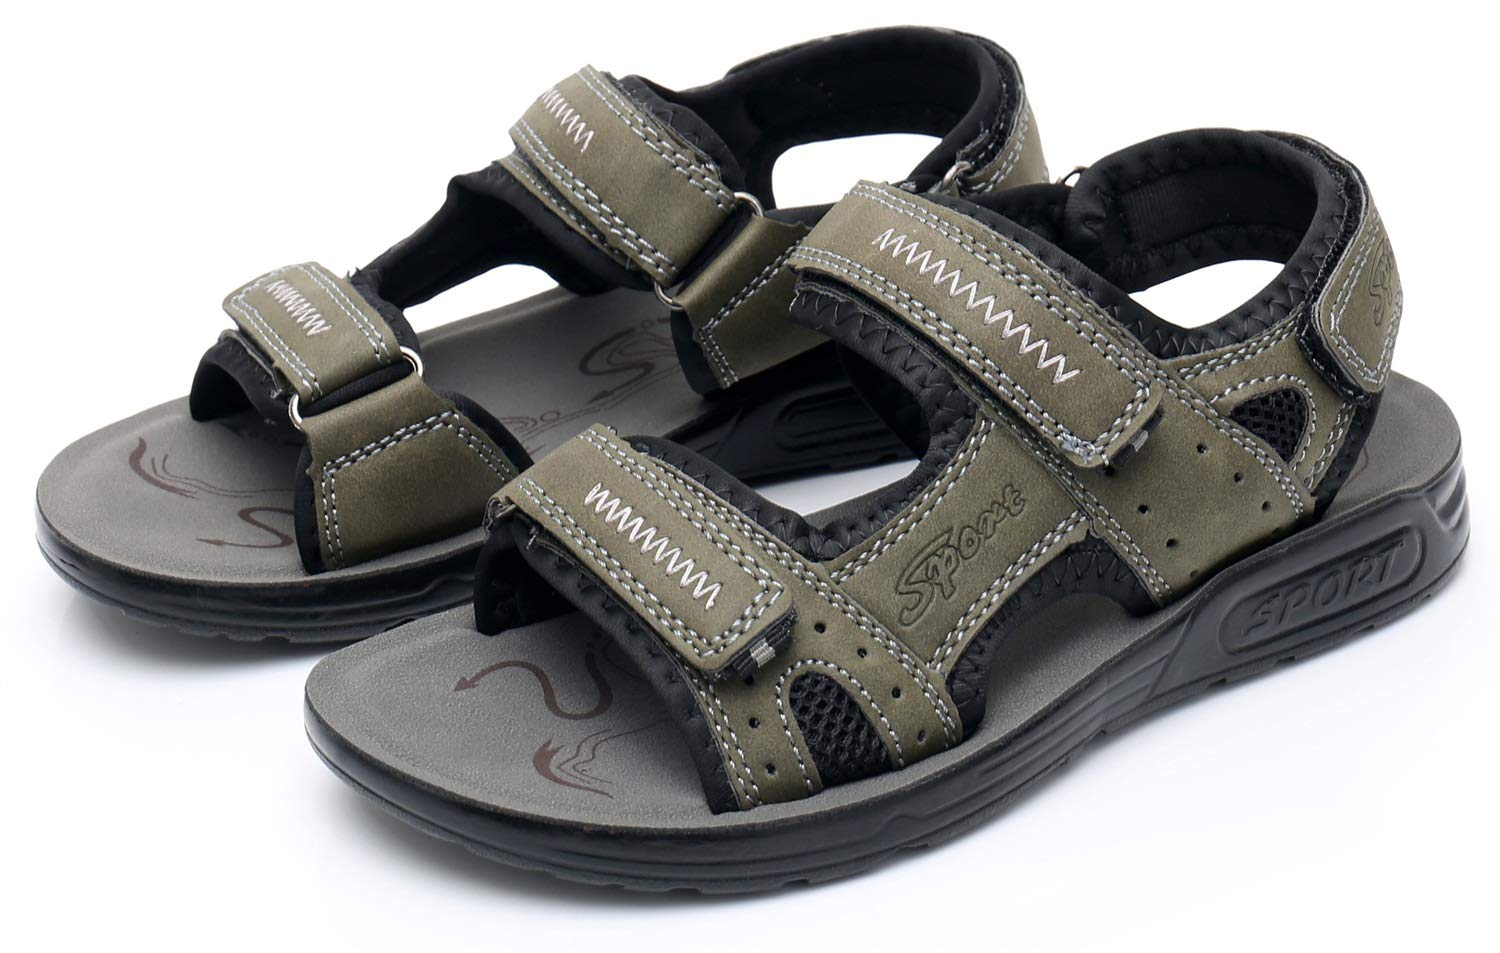 Non-Slip Summer Shoes Kids Boys Open Toe Three Strap Walking Sandals Durable Color : Camouflage Green , Size : 4 M US Big Kid